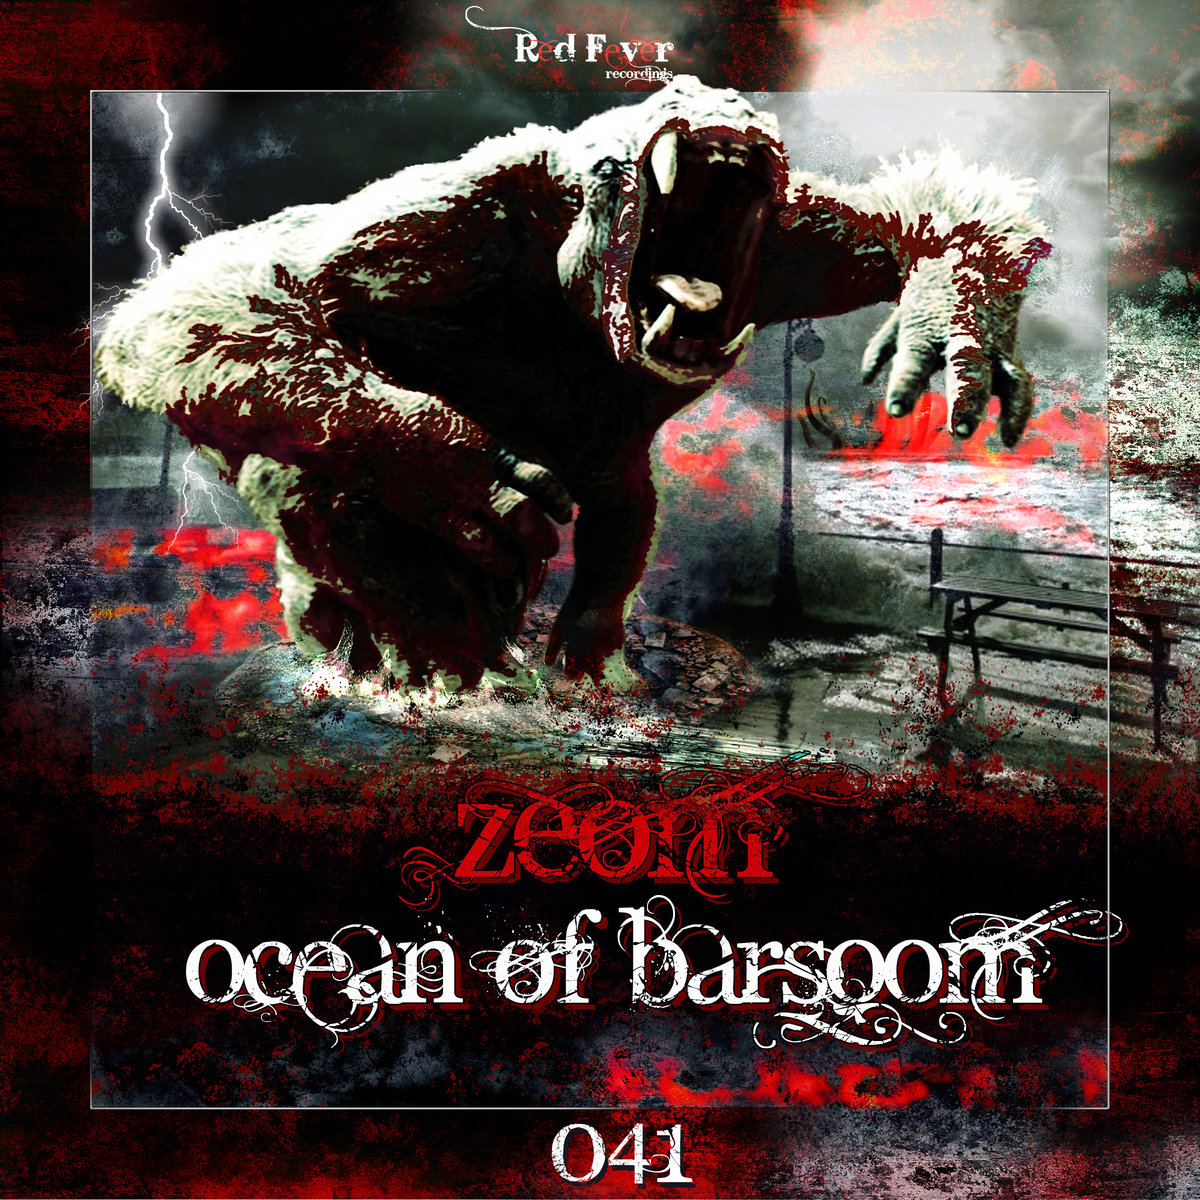 Zeom - I Can See It Every Day (Ocean) @ 'Ocean Of Barsoom' album (electronic, gabber)